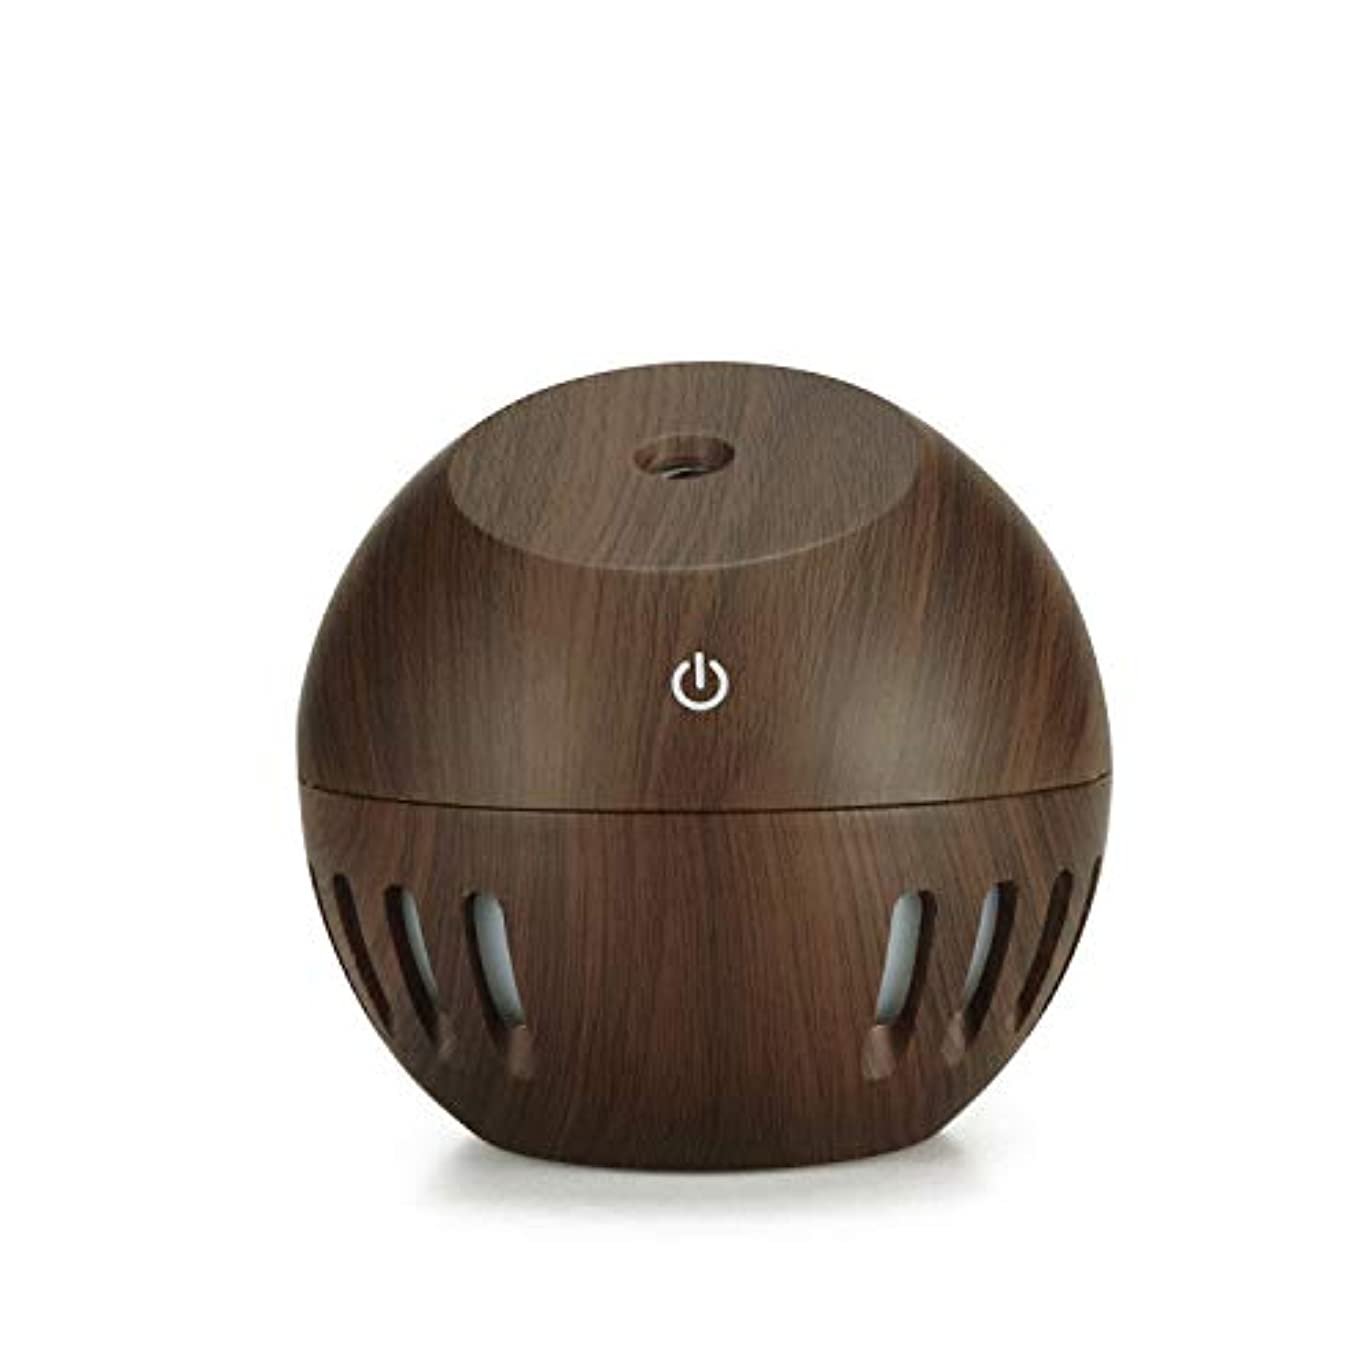 変な理由ハンサム130ml Essential Oils Diffuser Electric Cool Mist Aroma Diffuser For Home, Yoga, Bedroom